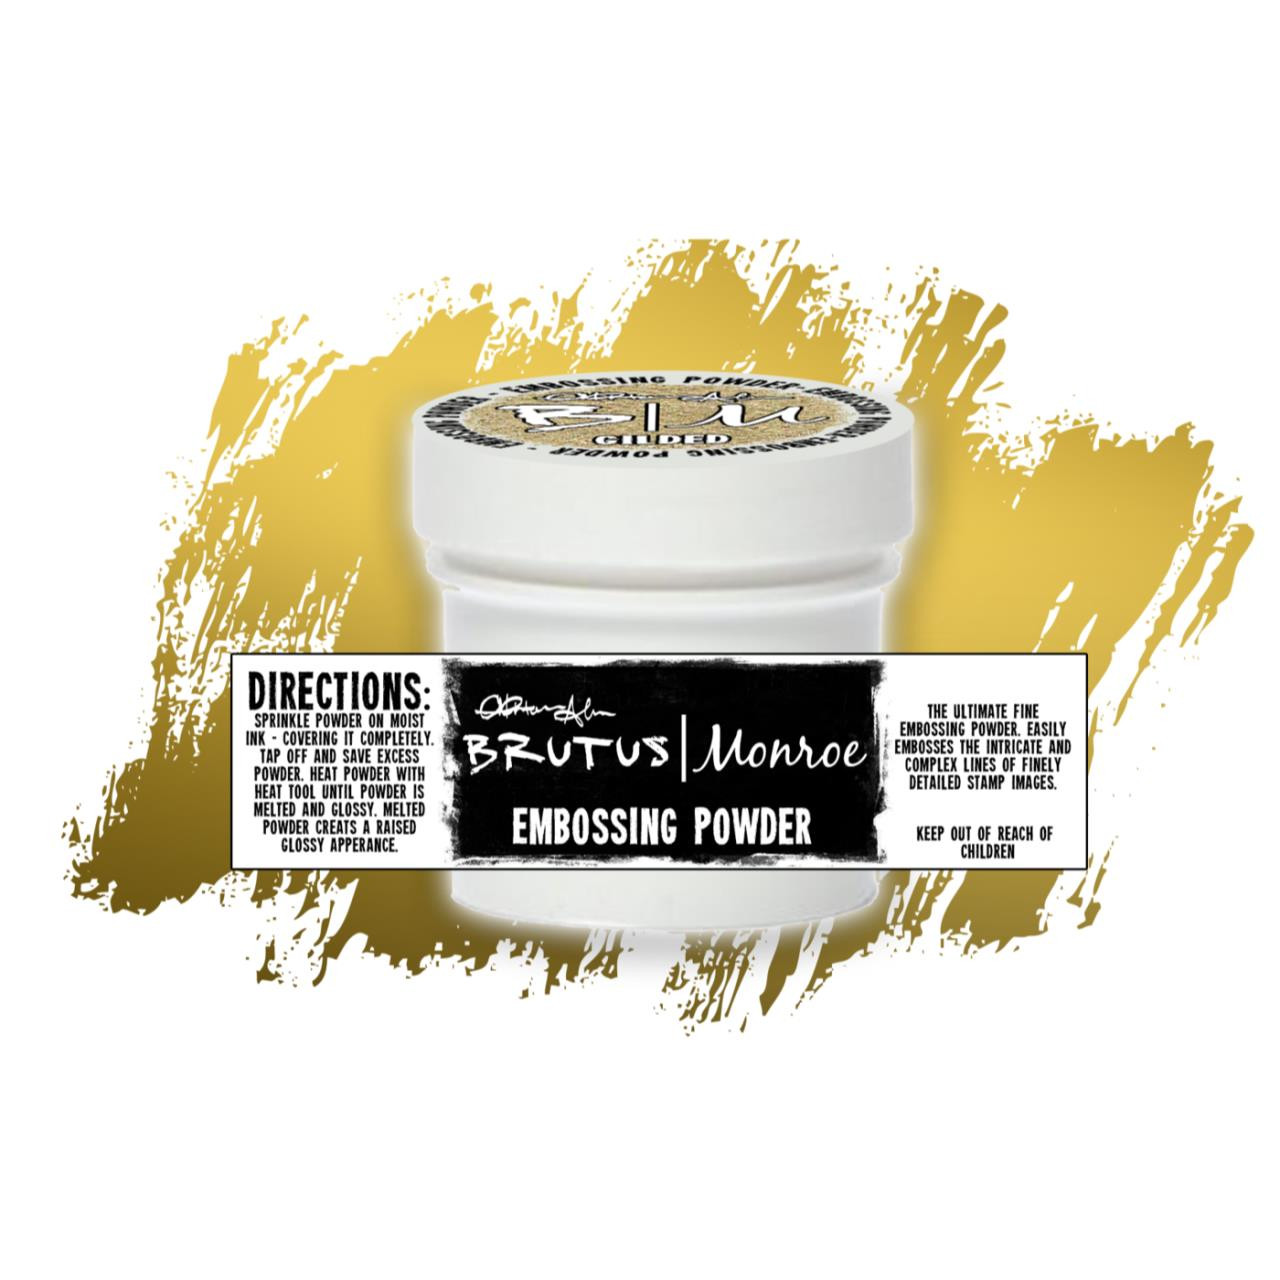 Gilded, Brutus Monroe Metallic Embossing Powder - 027829652487